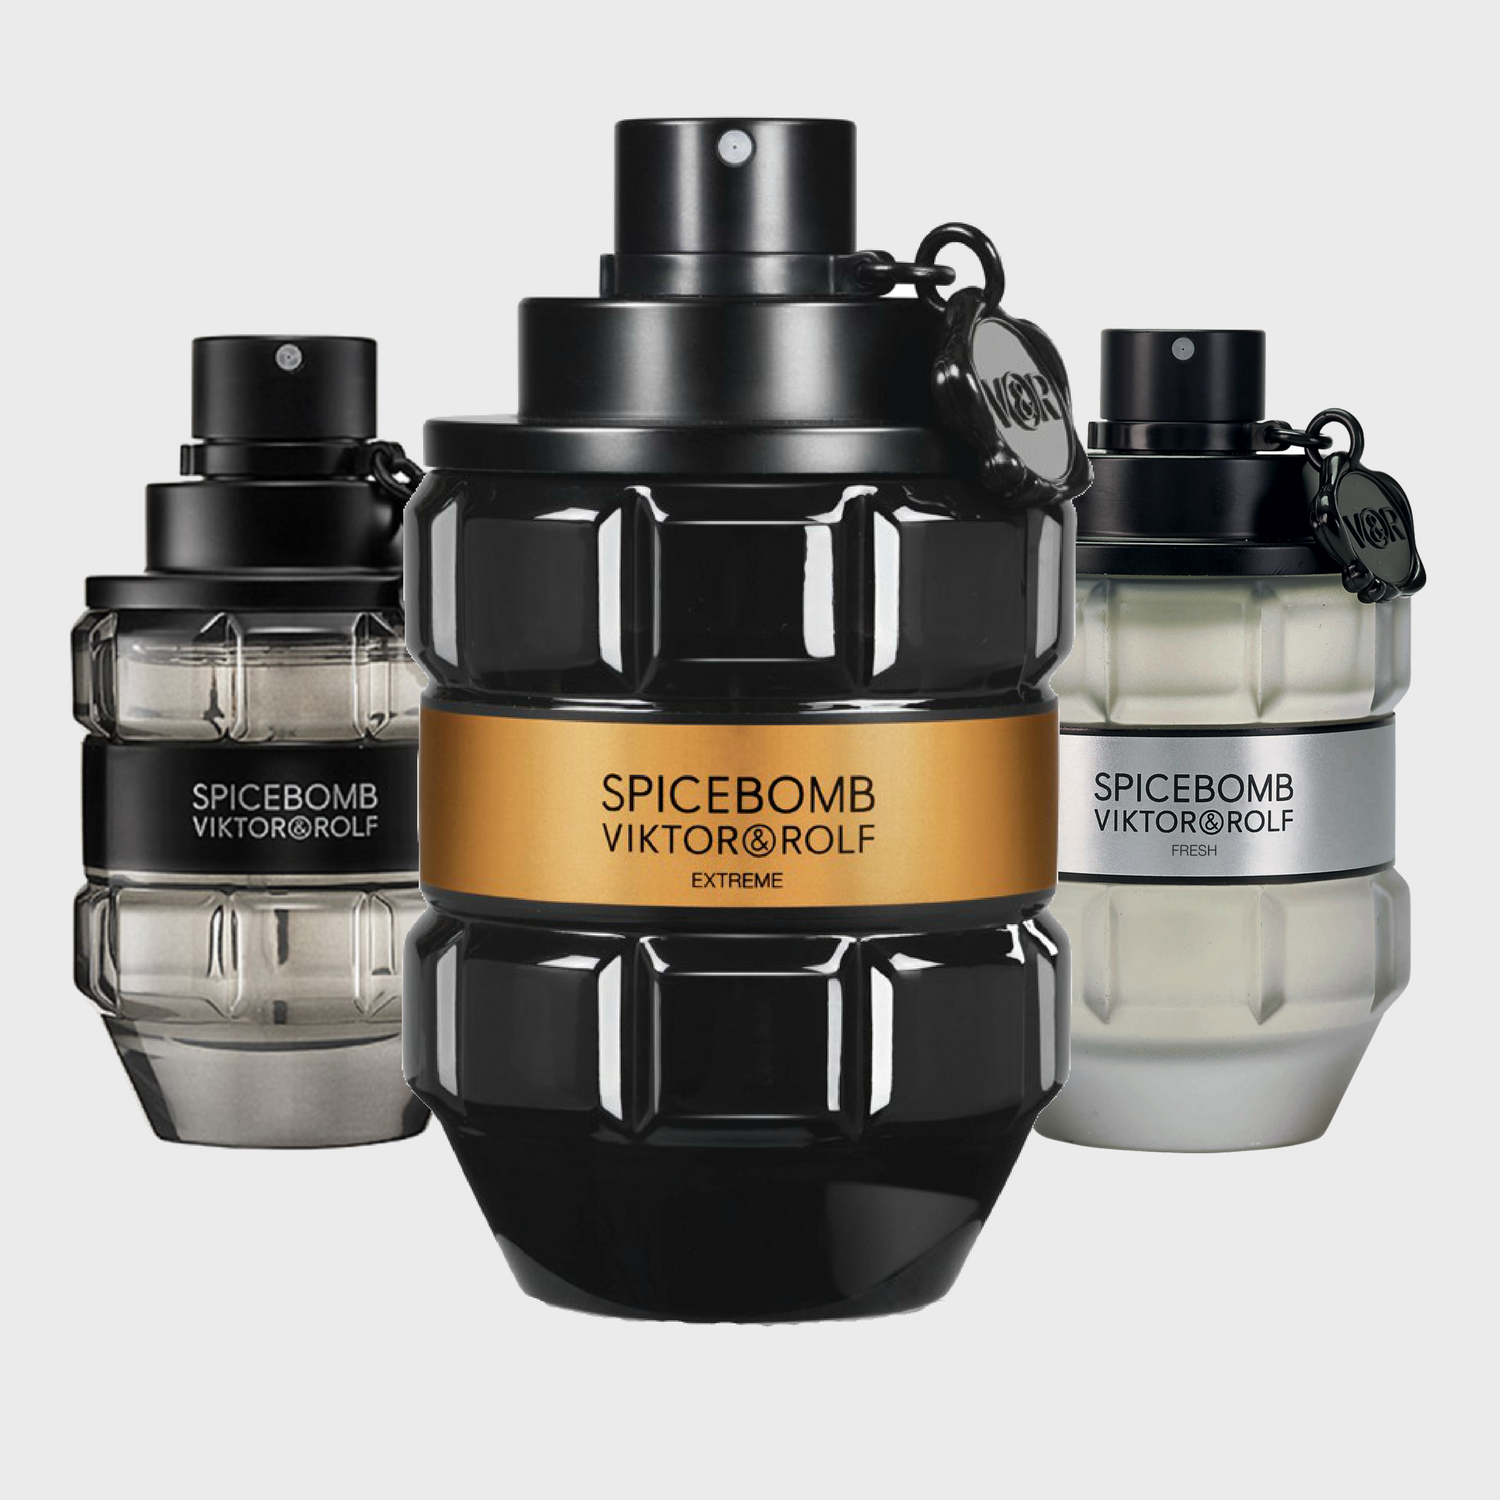 Copy of Spicebomb extreme, Spicebomb fresh, sipicebomb fraiche, spicebomb by viktor and rolf (1)